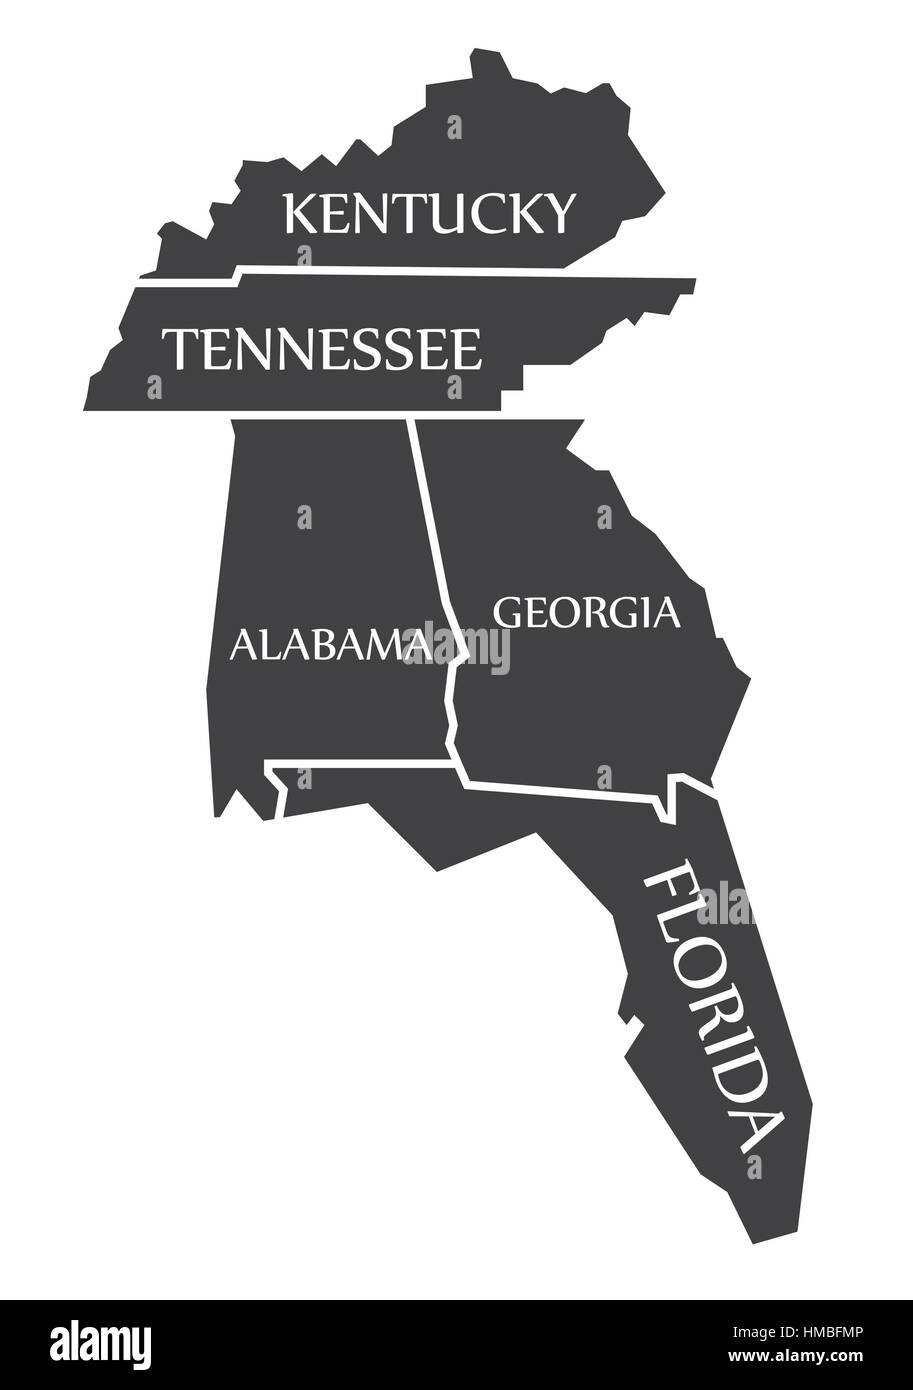 Kentucky Tennessee Alabama Georgia Florida Map Labelled - Georgia map label